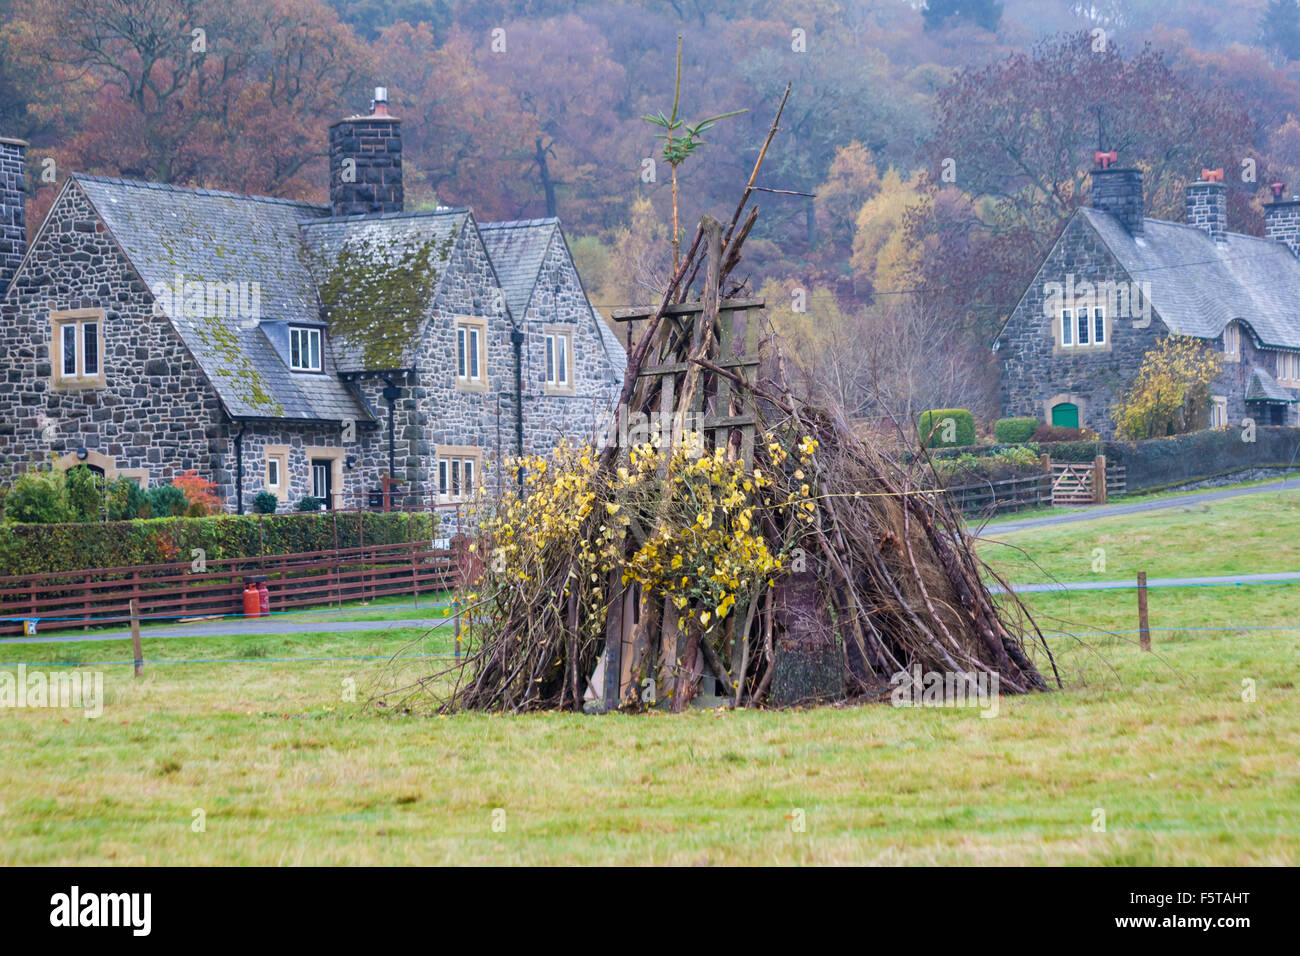 Autumn colours and bonfire ready for bonfire night at Elan village in Elan Valley, Mid Wales - Stock Image